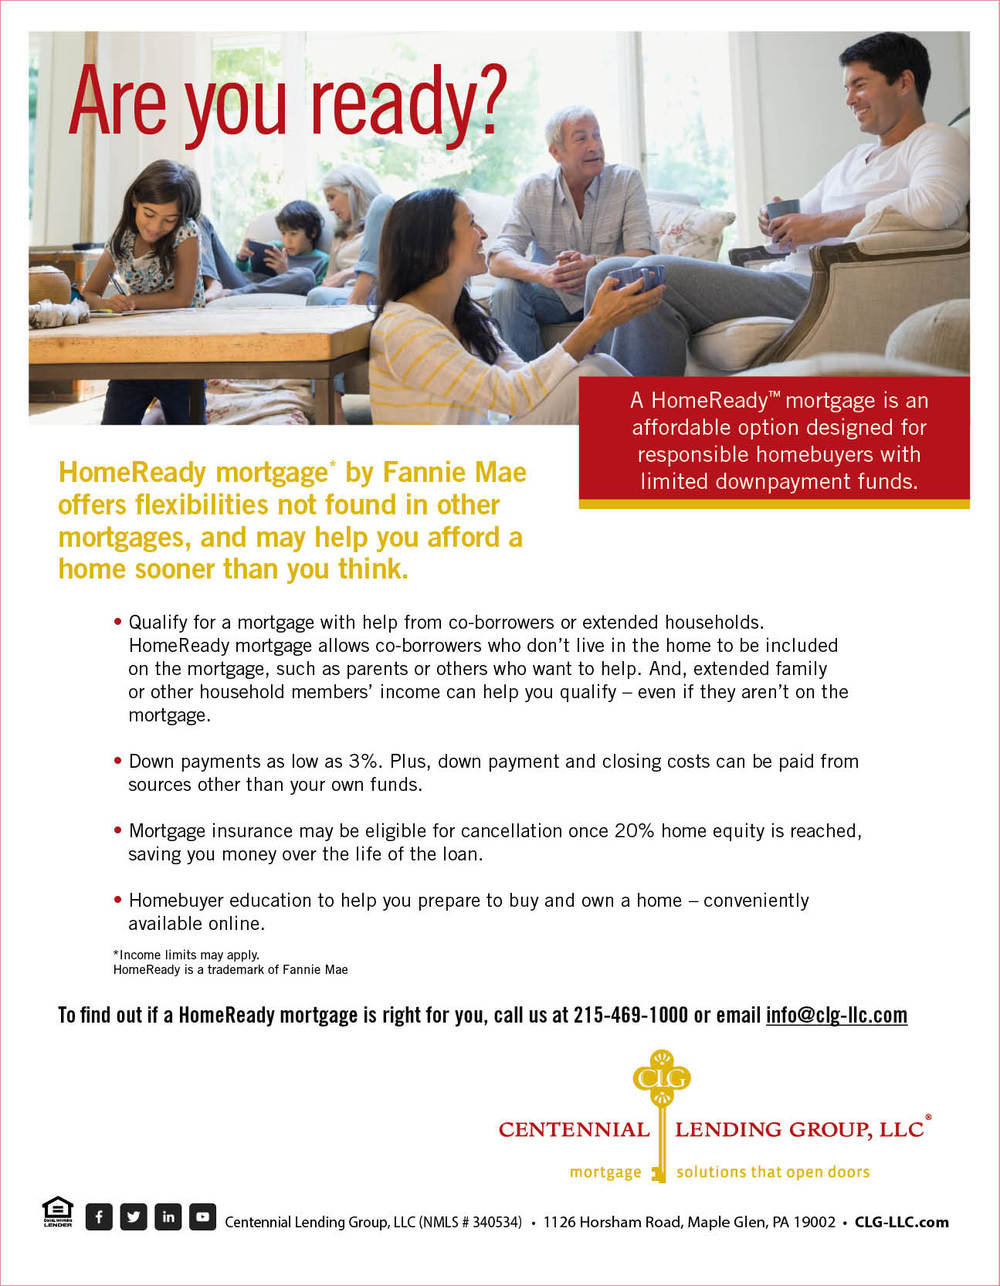 HOME READY MORTGAGES